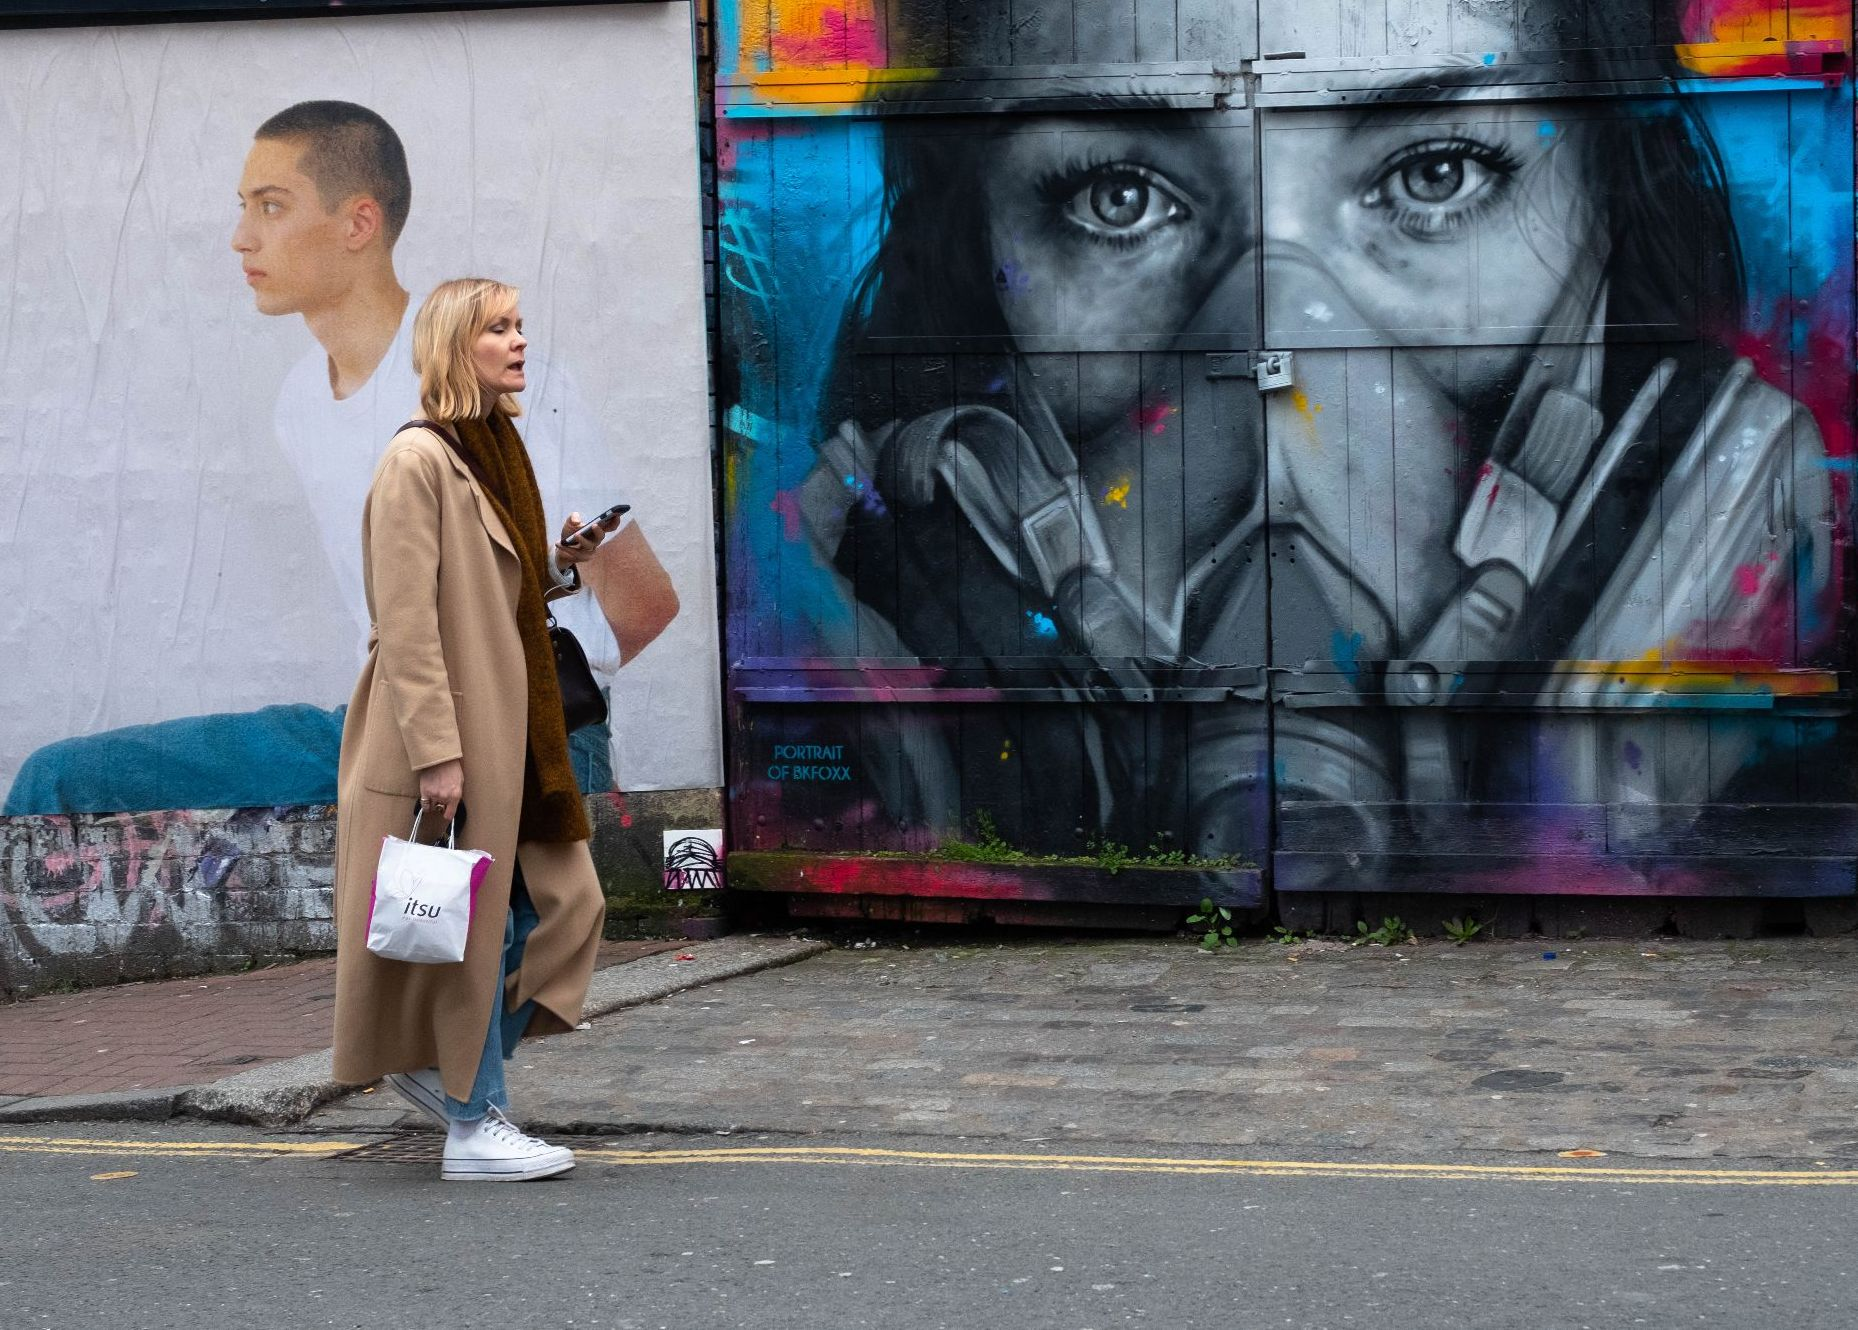 blacn and white woman in face mask street scene grafitti